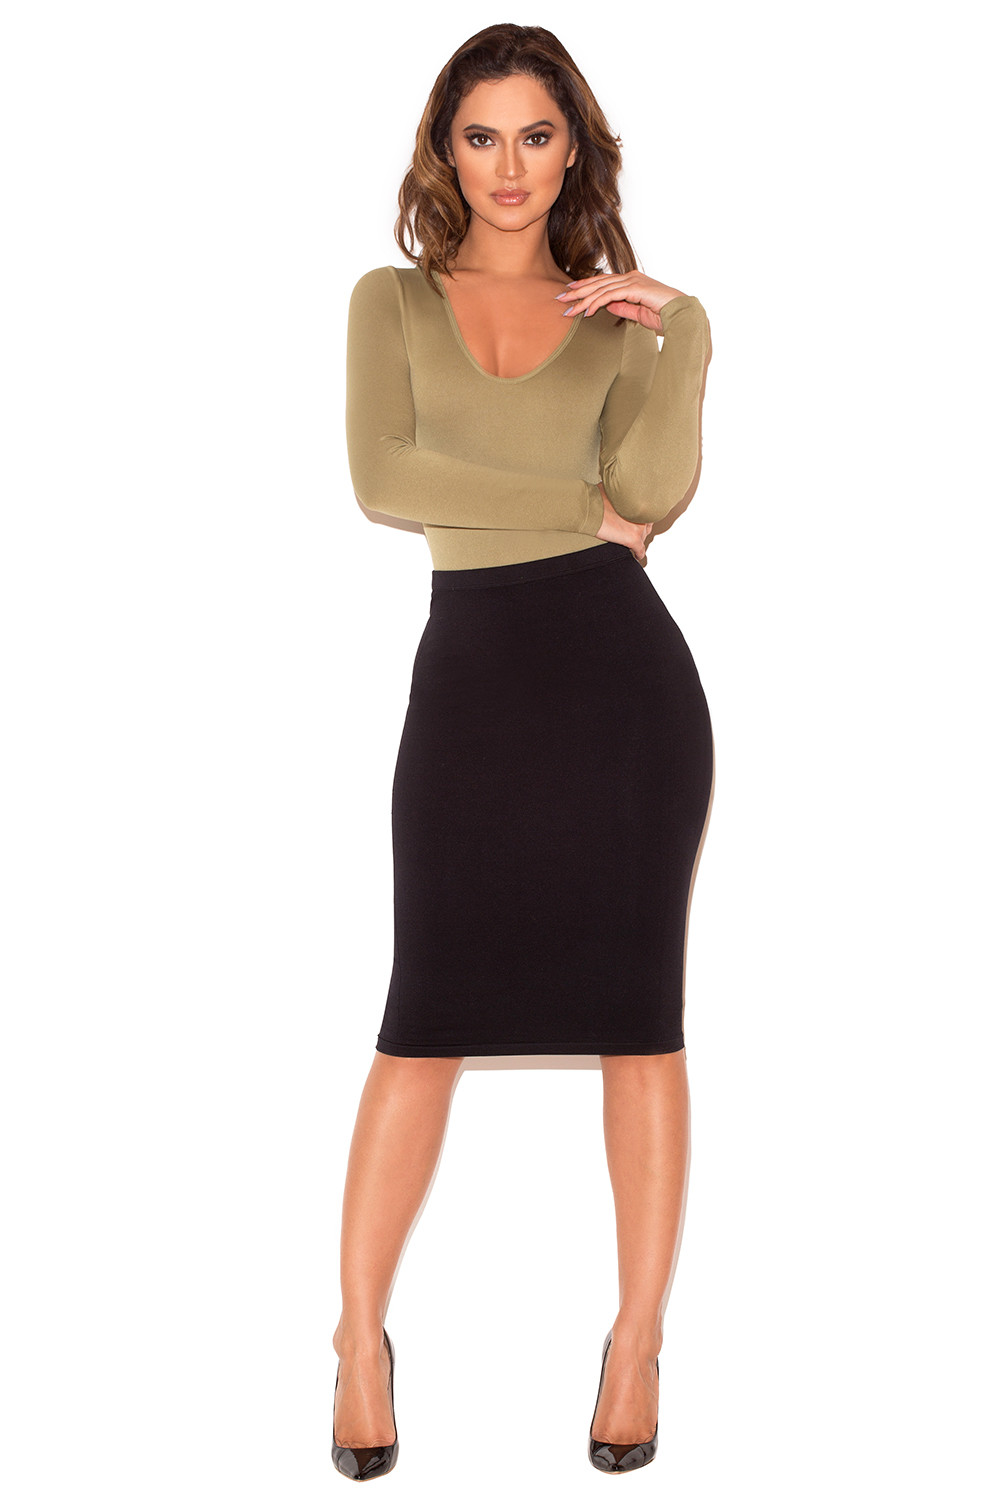 b9153b51588 Clothing   Bodysuits    Rosella  Nude Seamless Knit Scoop Neck ...